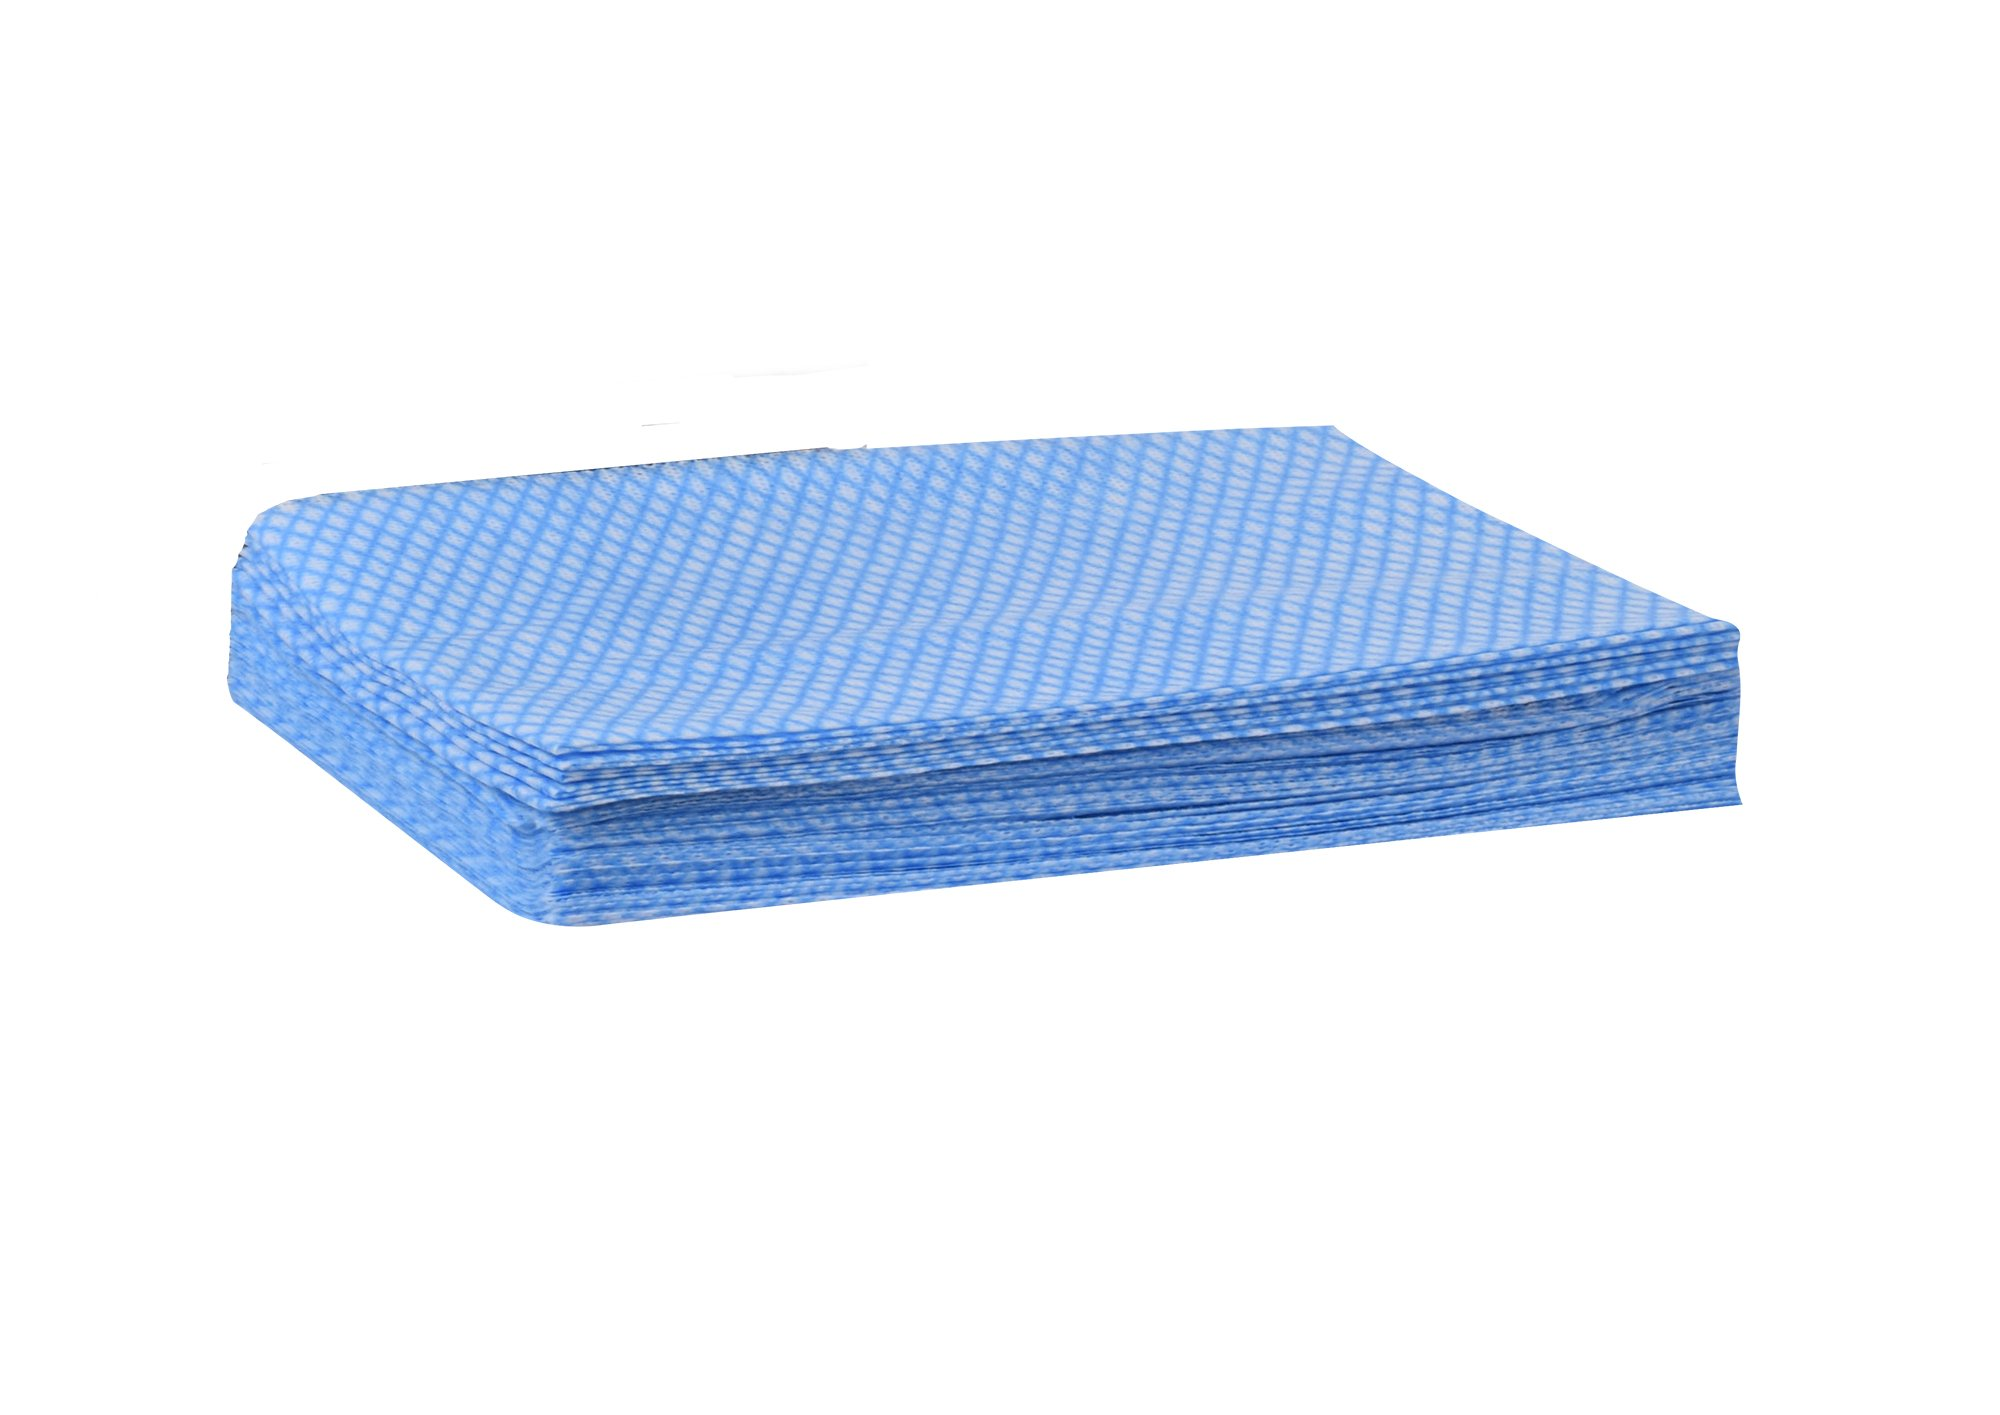 Tork 192181A Foodservice Cloth, 1/4 Fold, 1-Ply, 13'' Width x 21'' Length, Blue/White (Case of 1 Box, 240 Cloths) by Tork (Image #6)